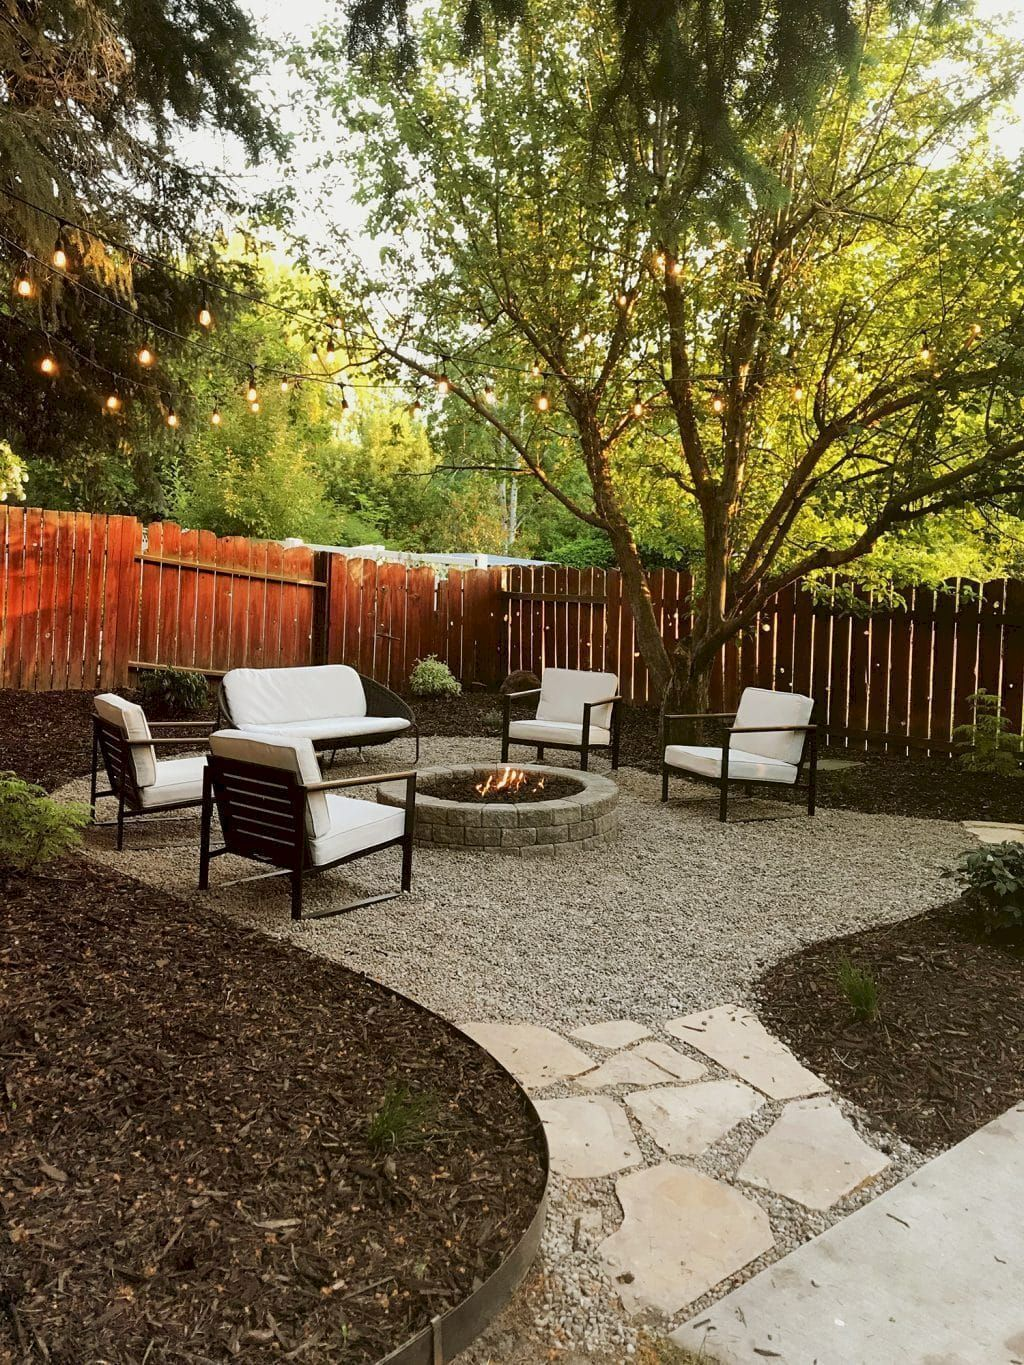 Why You Should Build Outdoor Firepit Great Affordable Backyard Ideas Backyard Landscaping Designs Fire Pit Backyard Backyard Fire